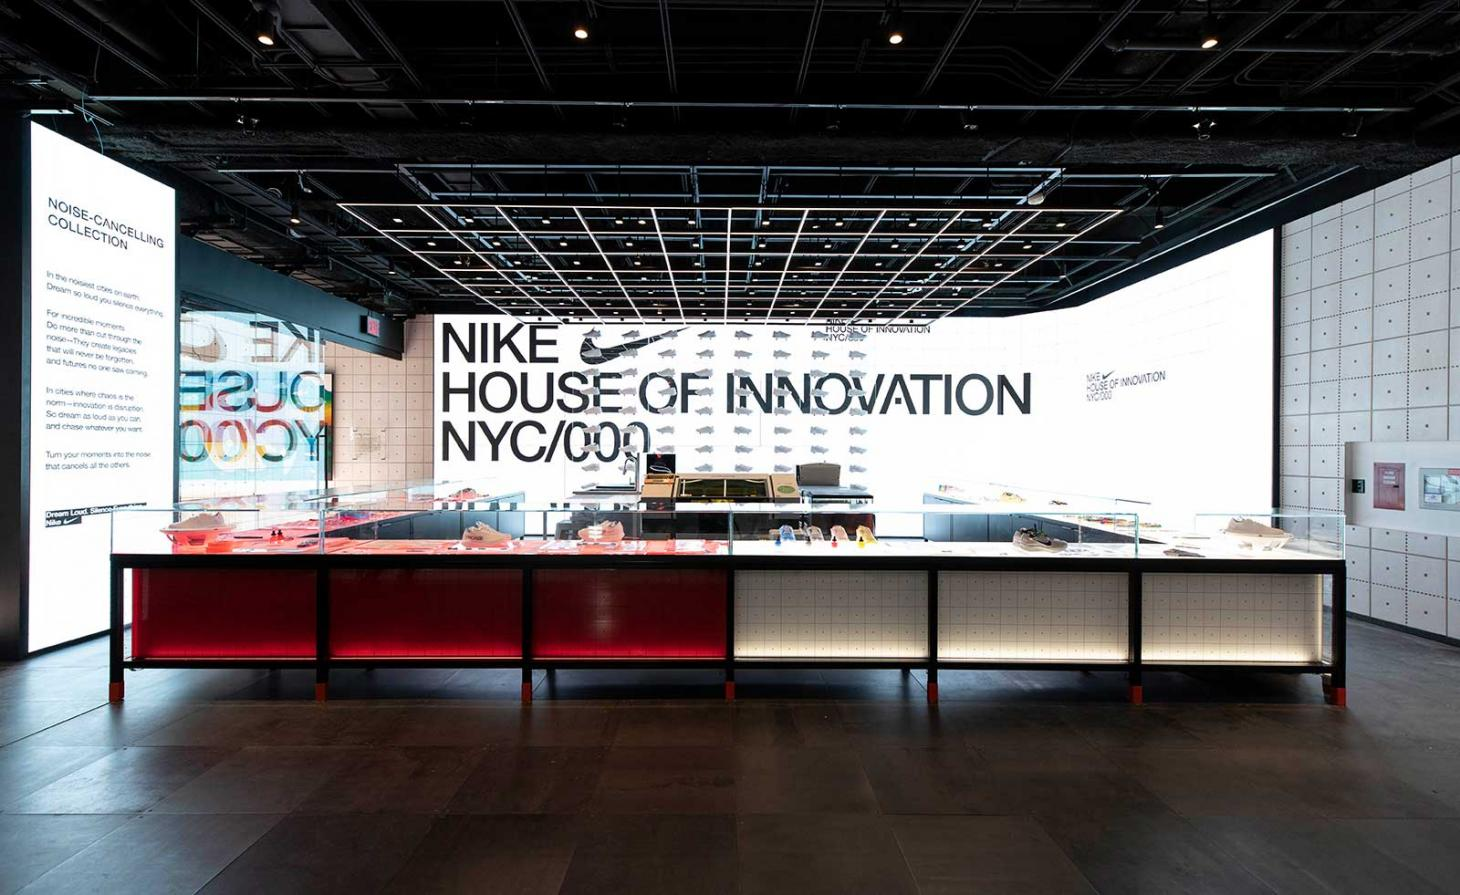 The Nike Arena in the new House of Innovation flagship store in New York